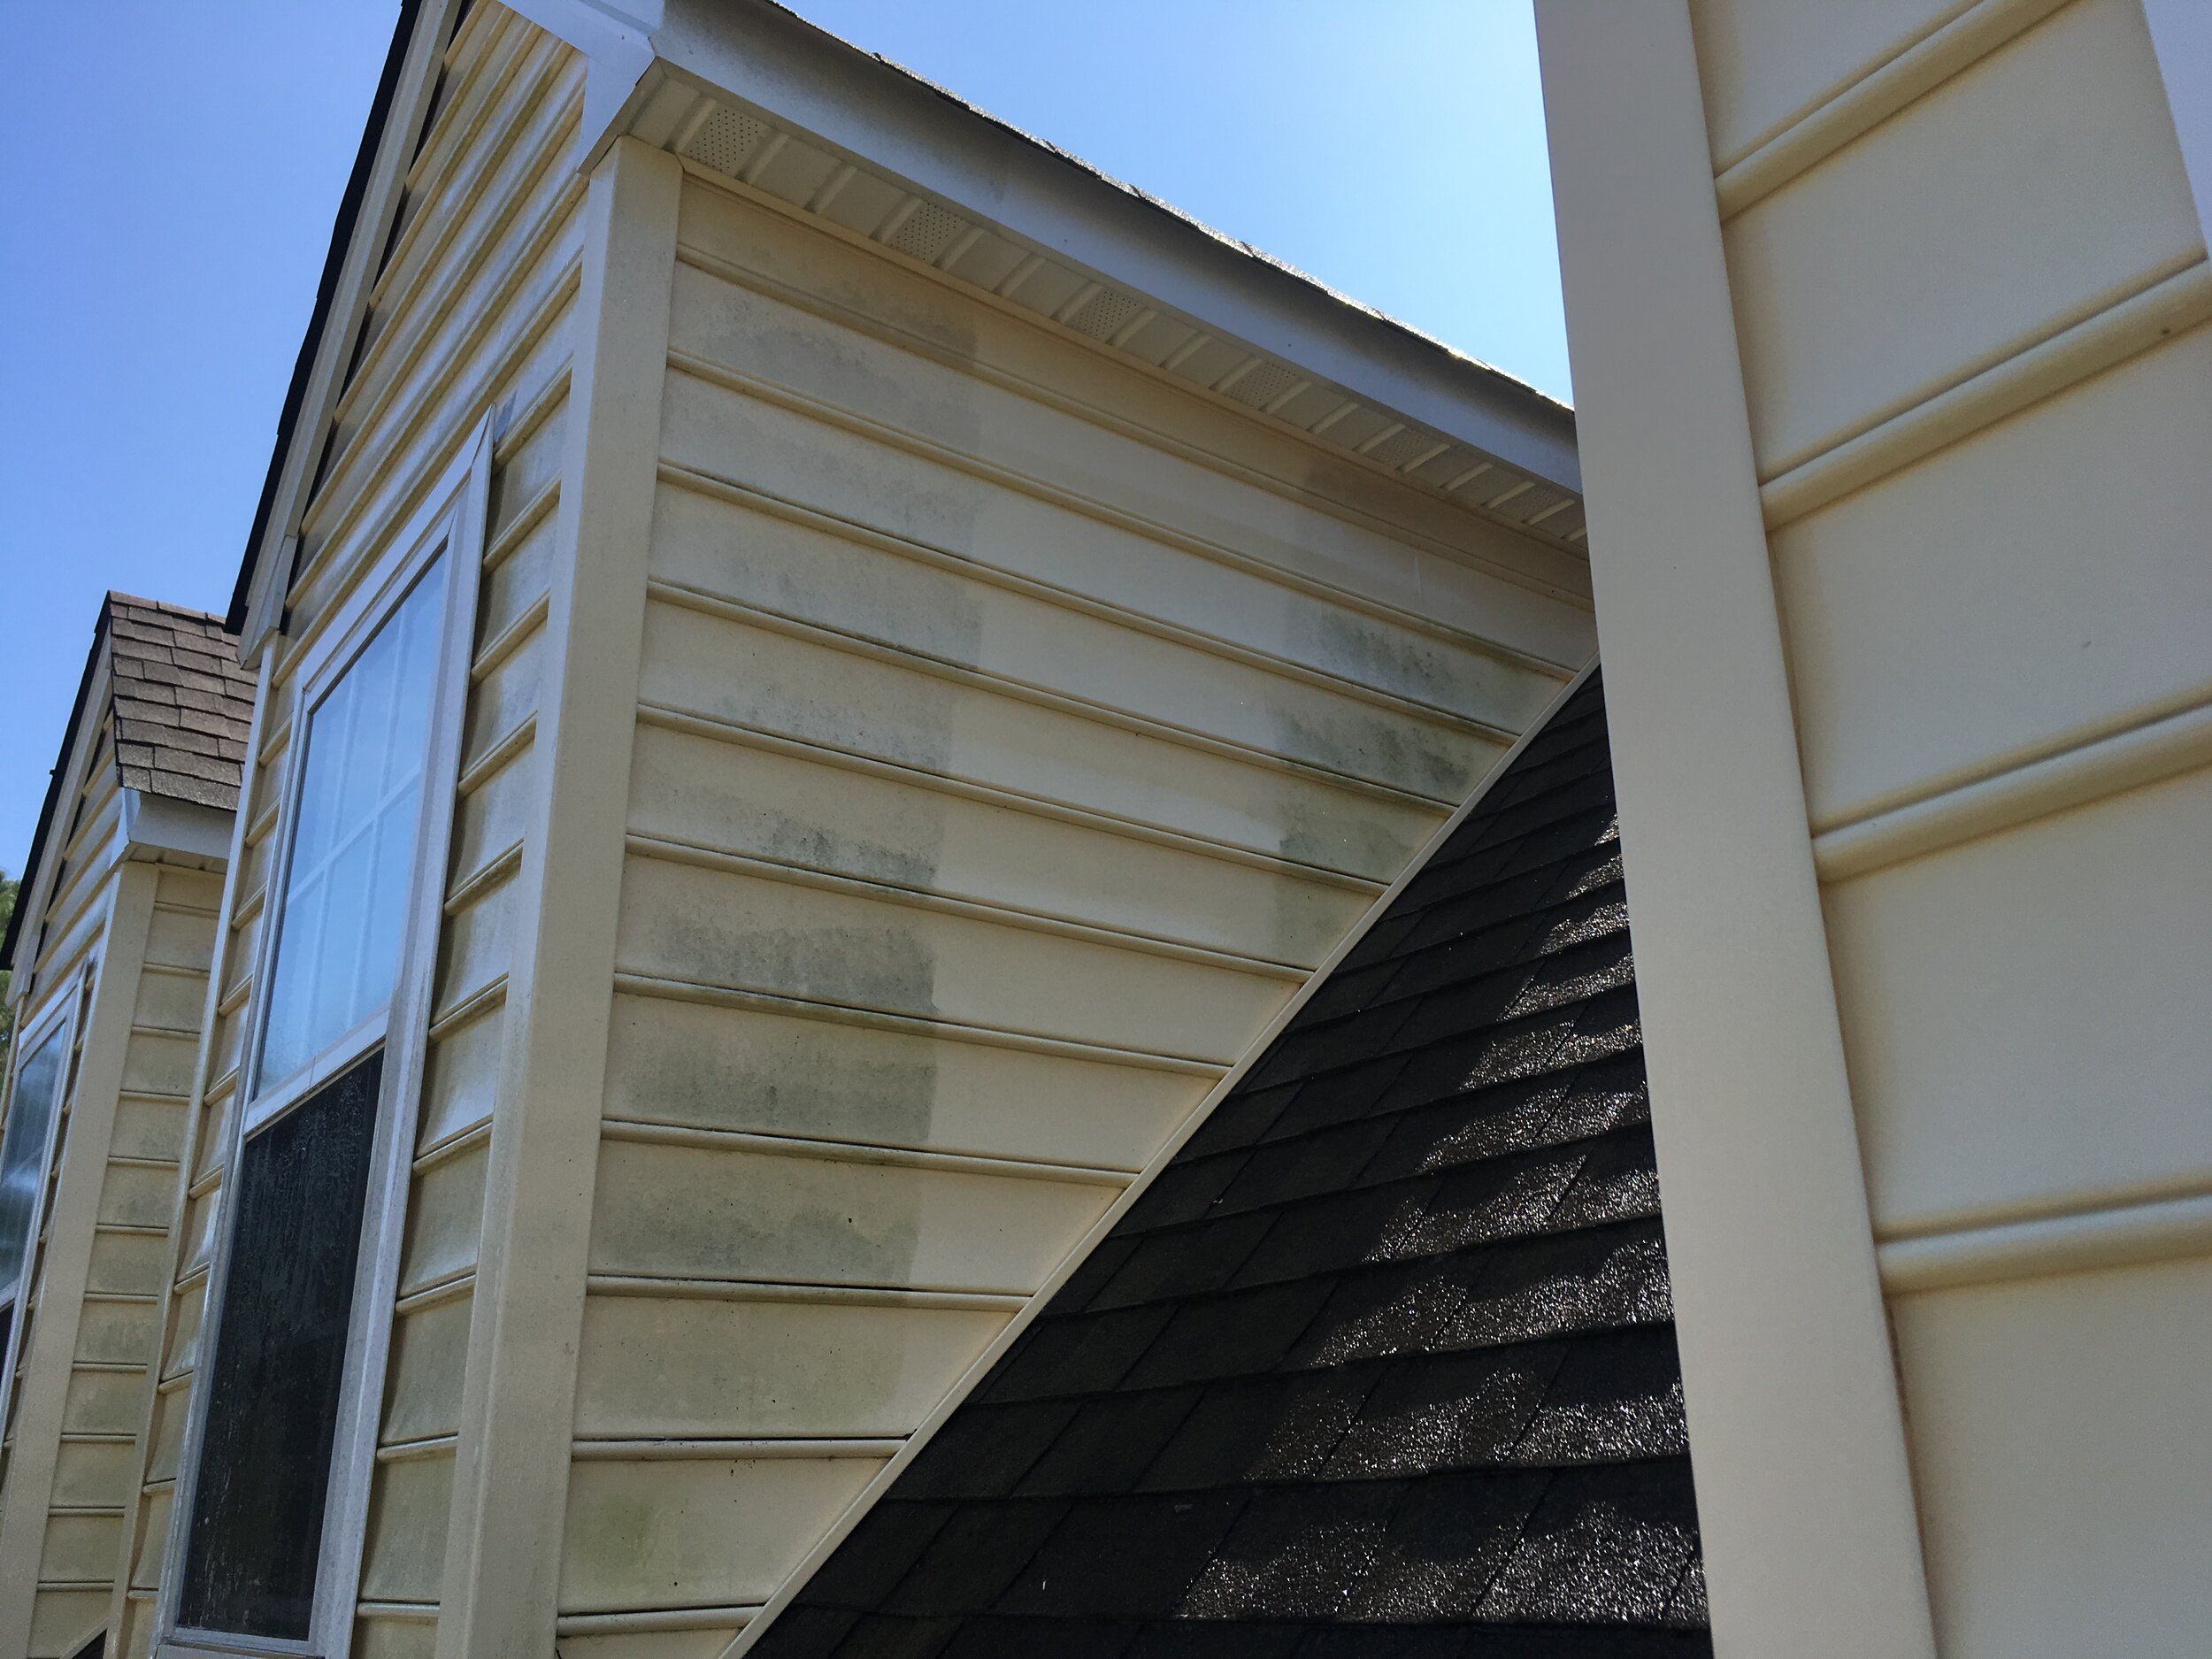 Pressure Washing Up close and personal - Pressure Washing Virginia Beach third story dormers with detail in mind not from the ground but up close and personal